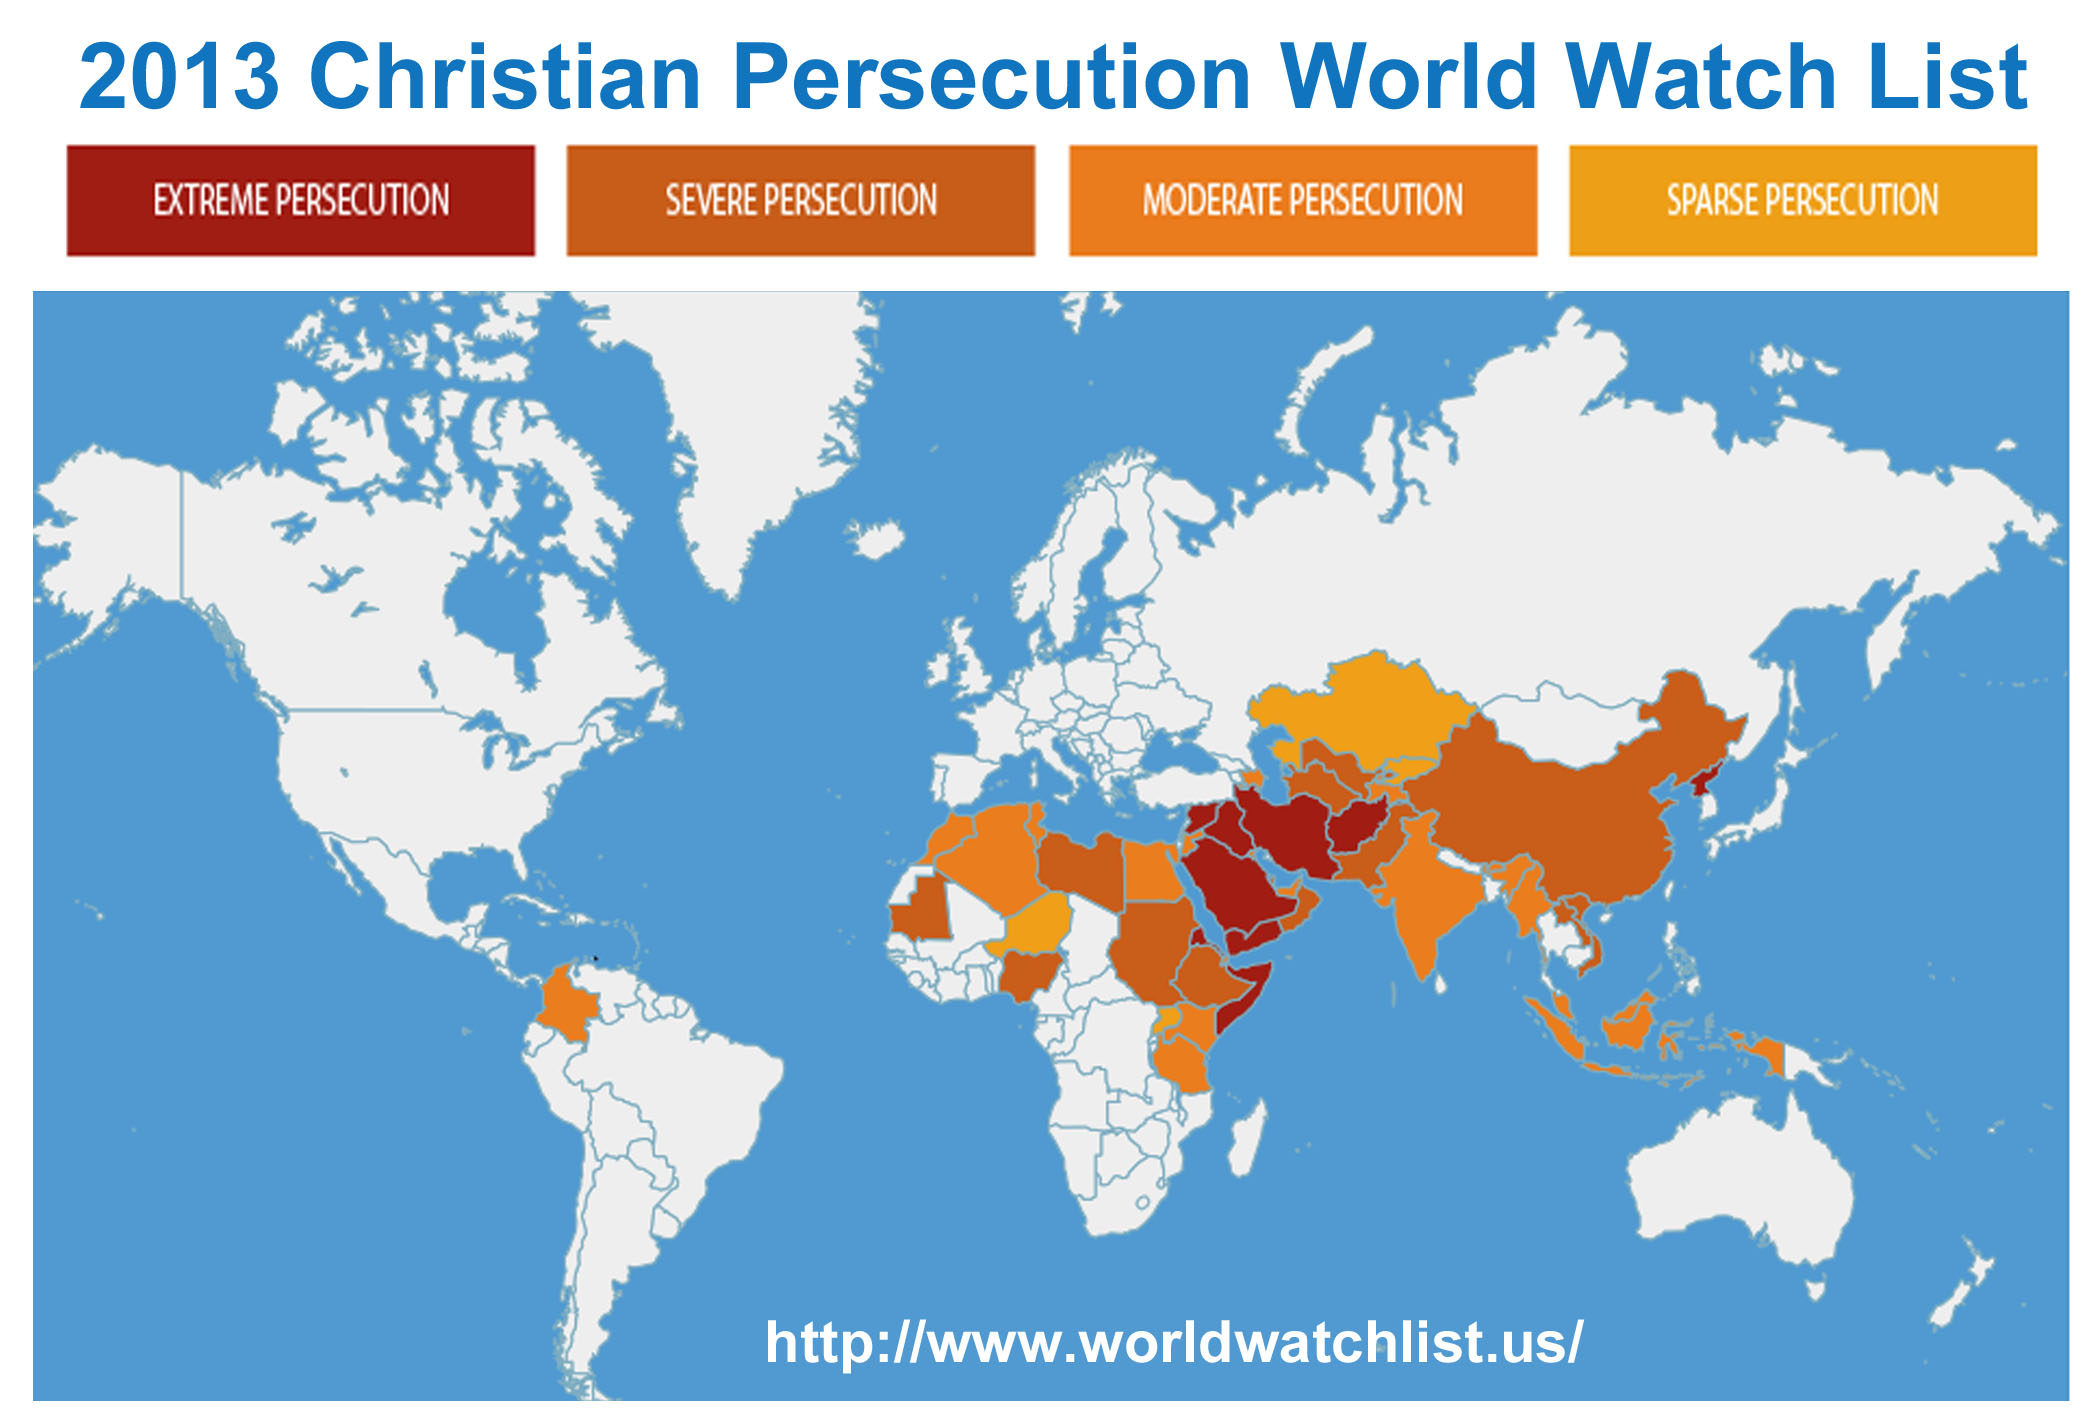 Christian Persecution World Watch List - Christian countries in the world map